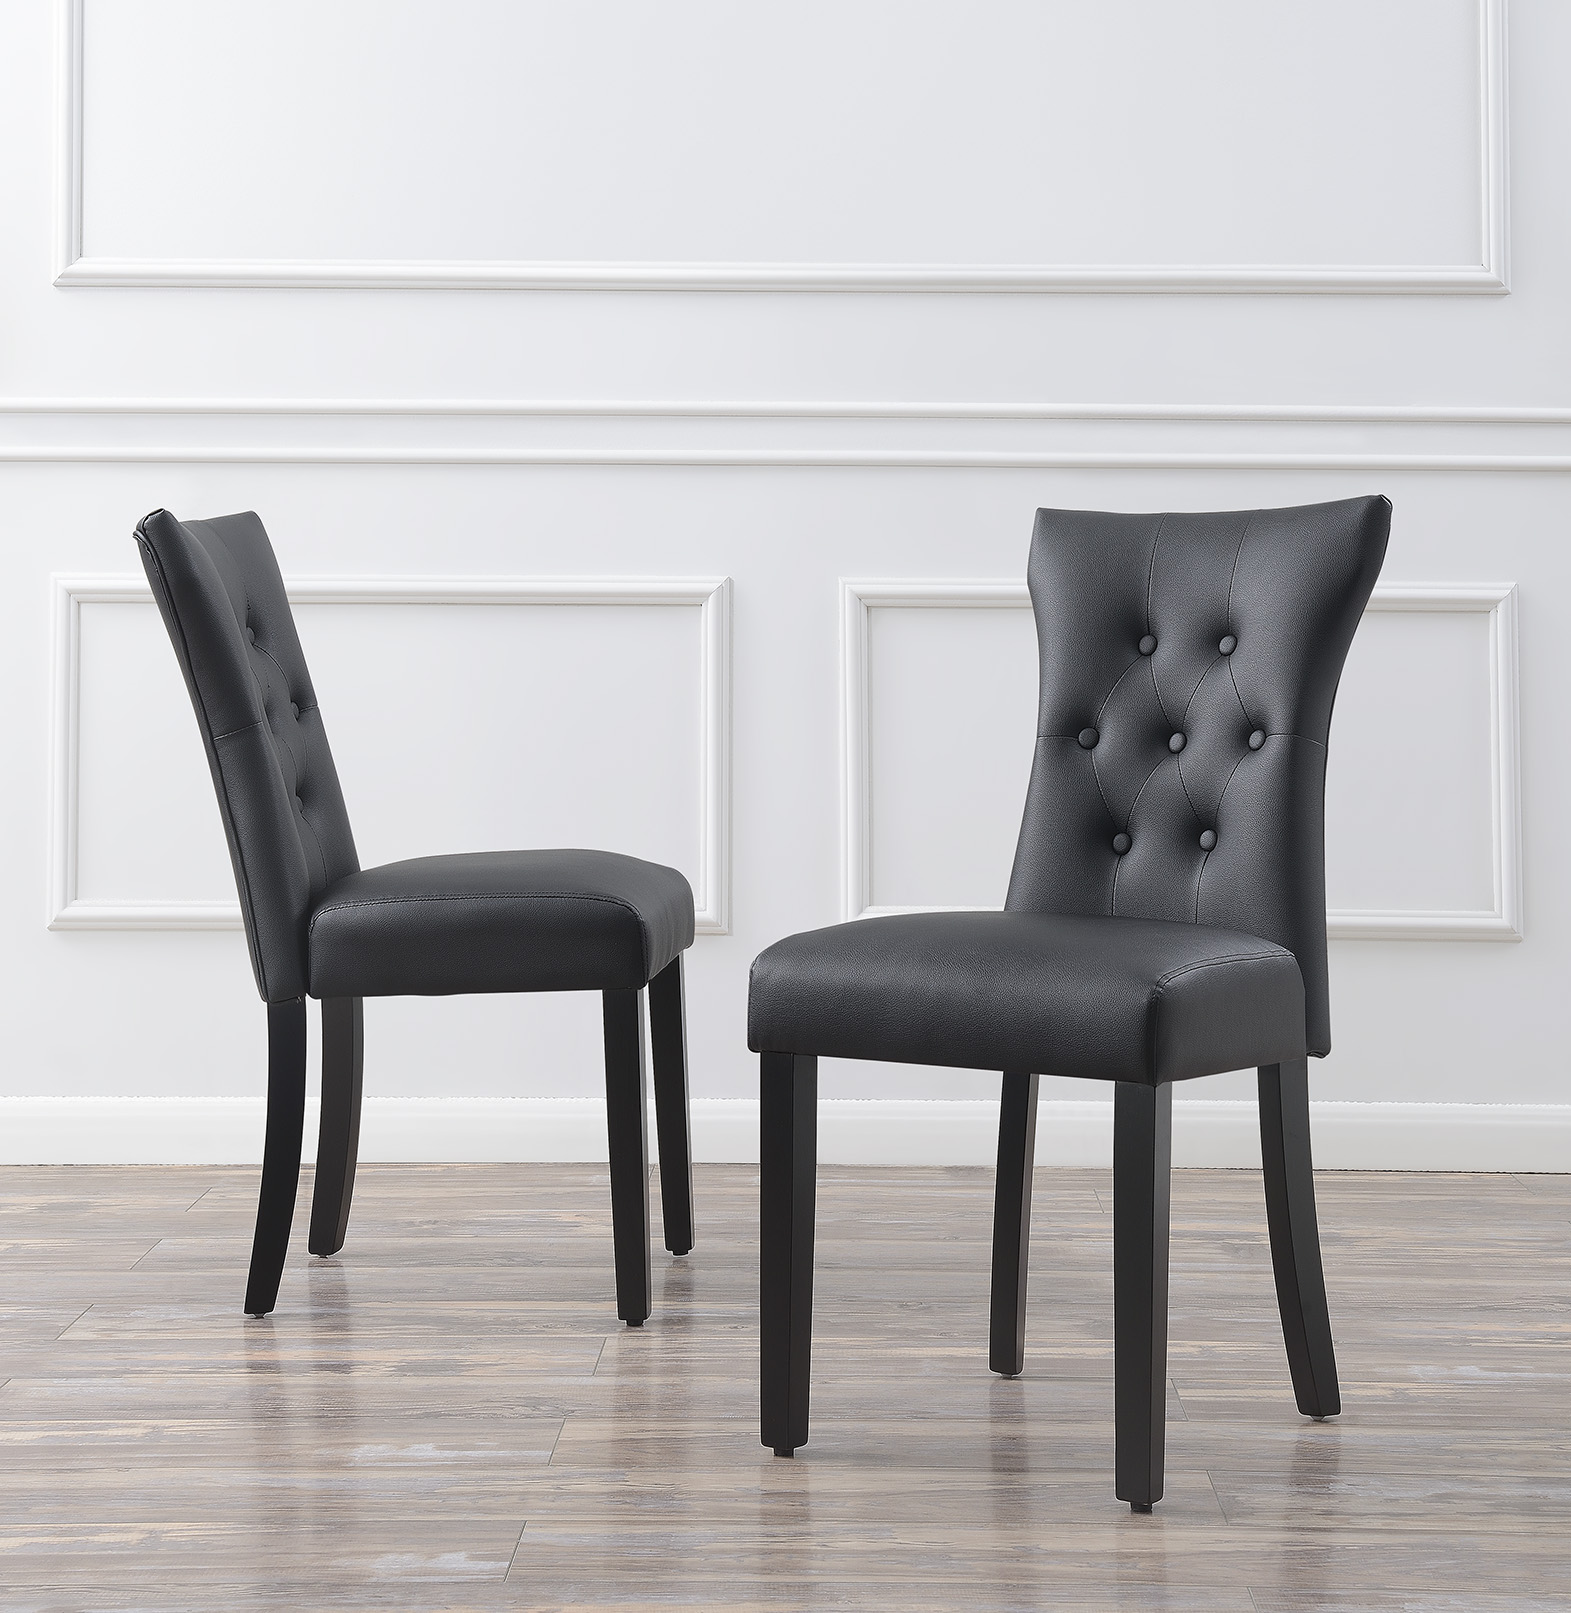 Leather Dining Set: Set Of (2) Modern Dining Chair Faux Leather Nailhead